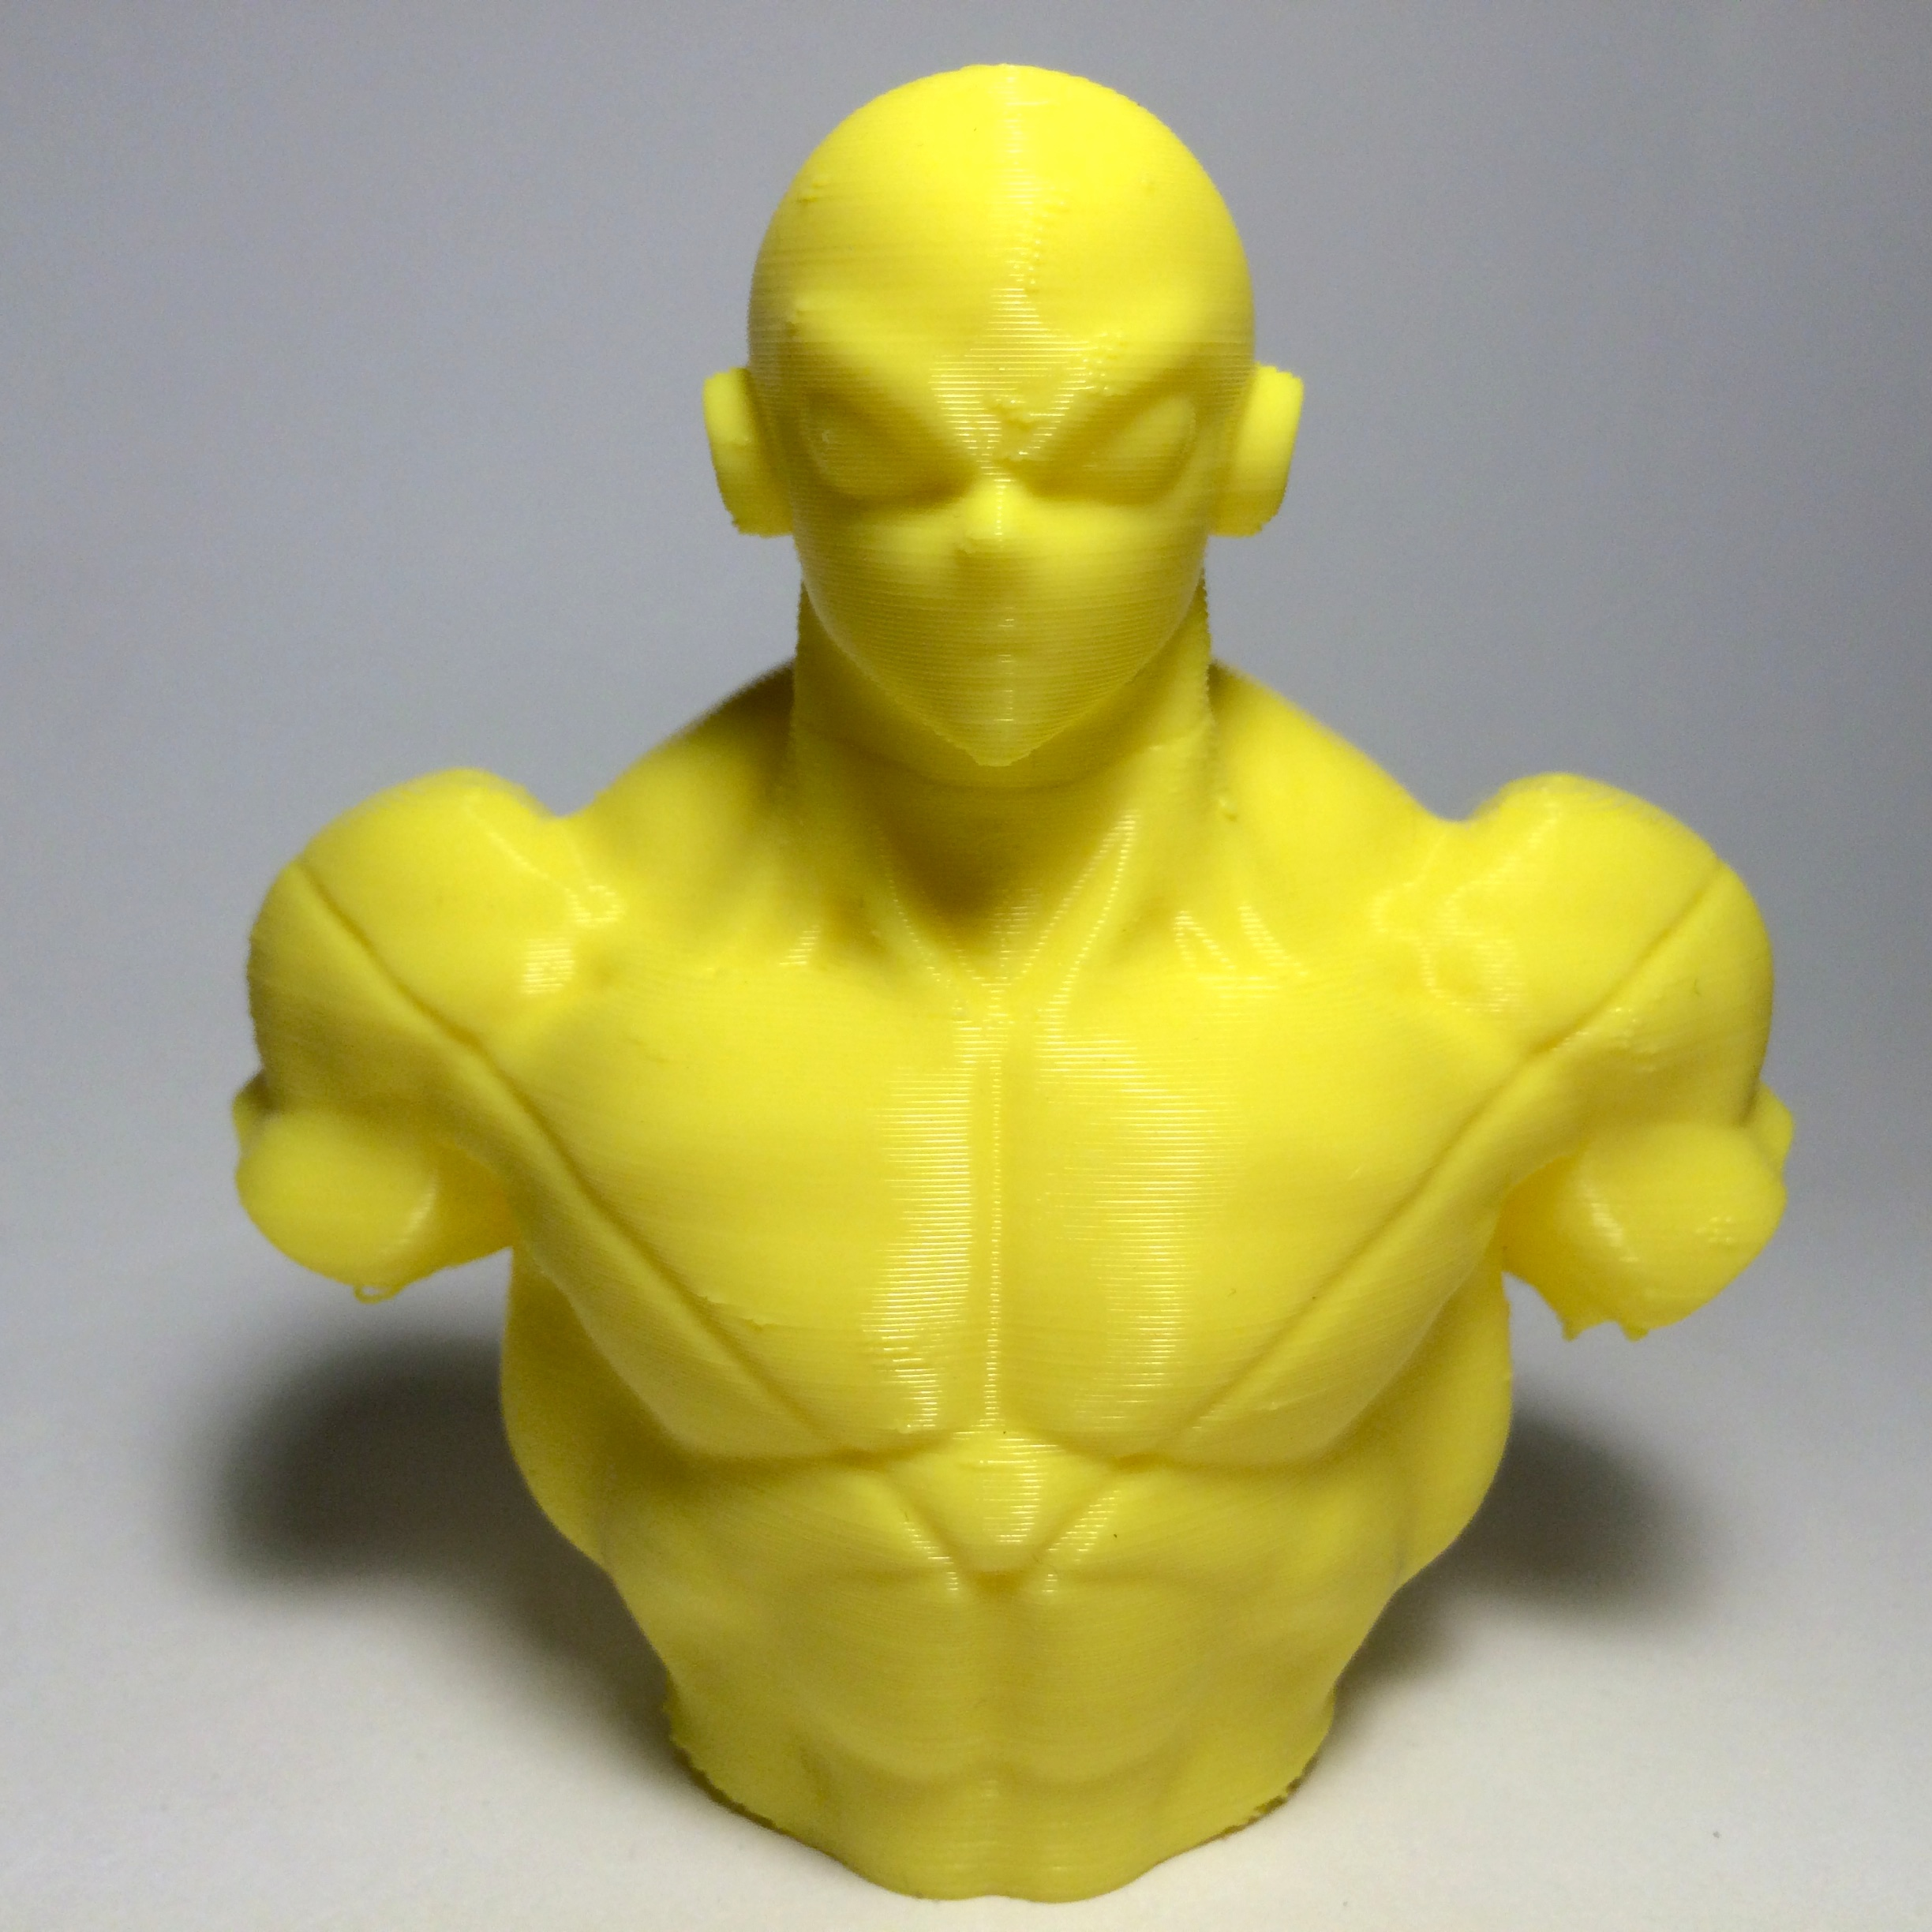 Dragon Ball super - Jiren bust